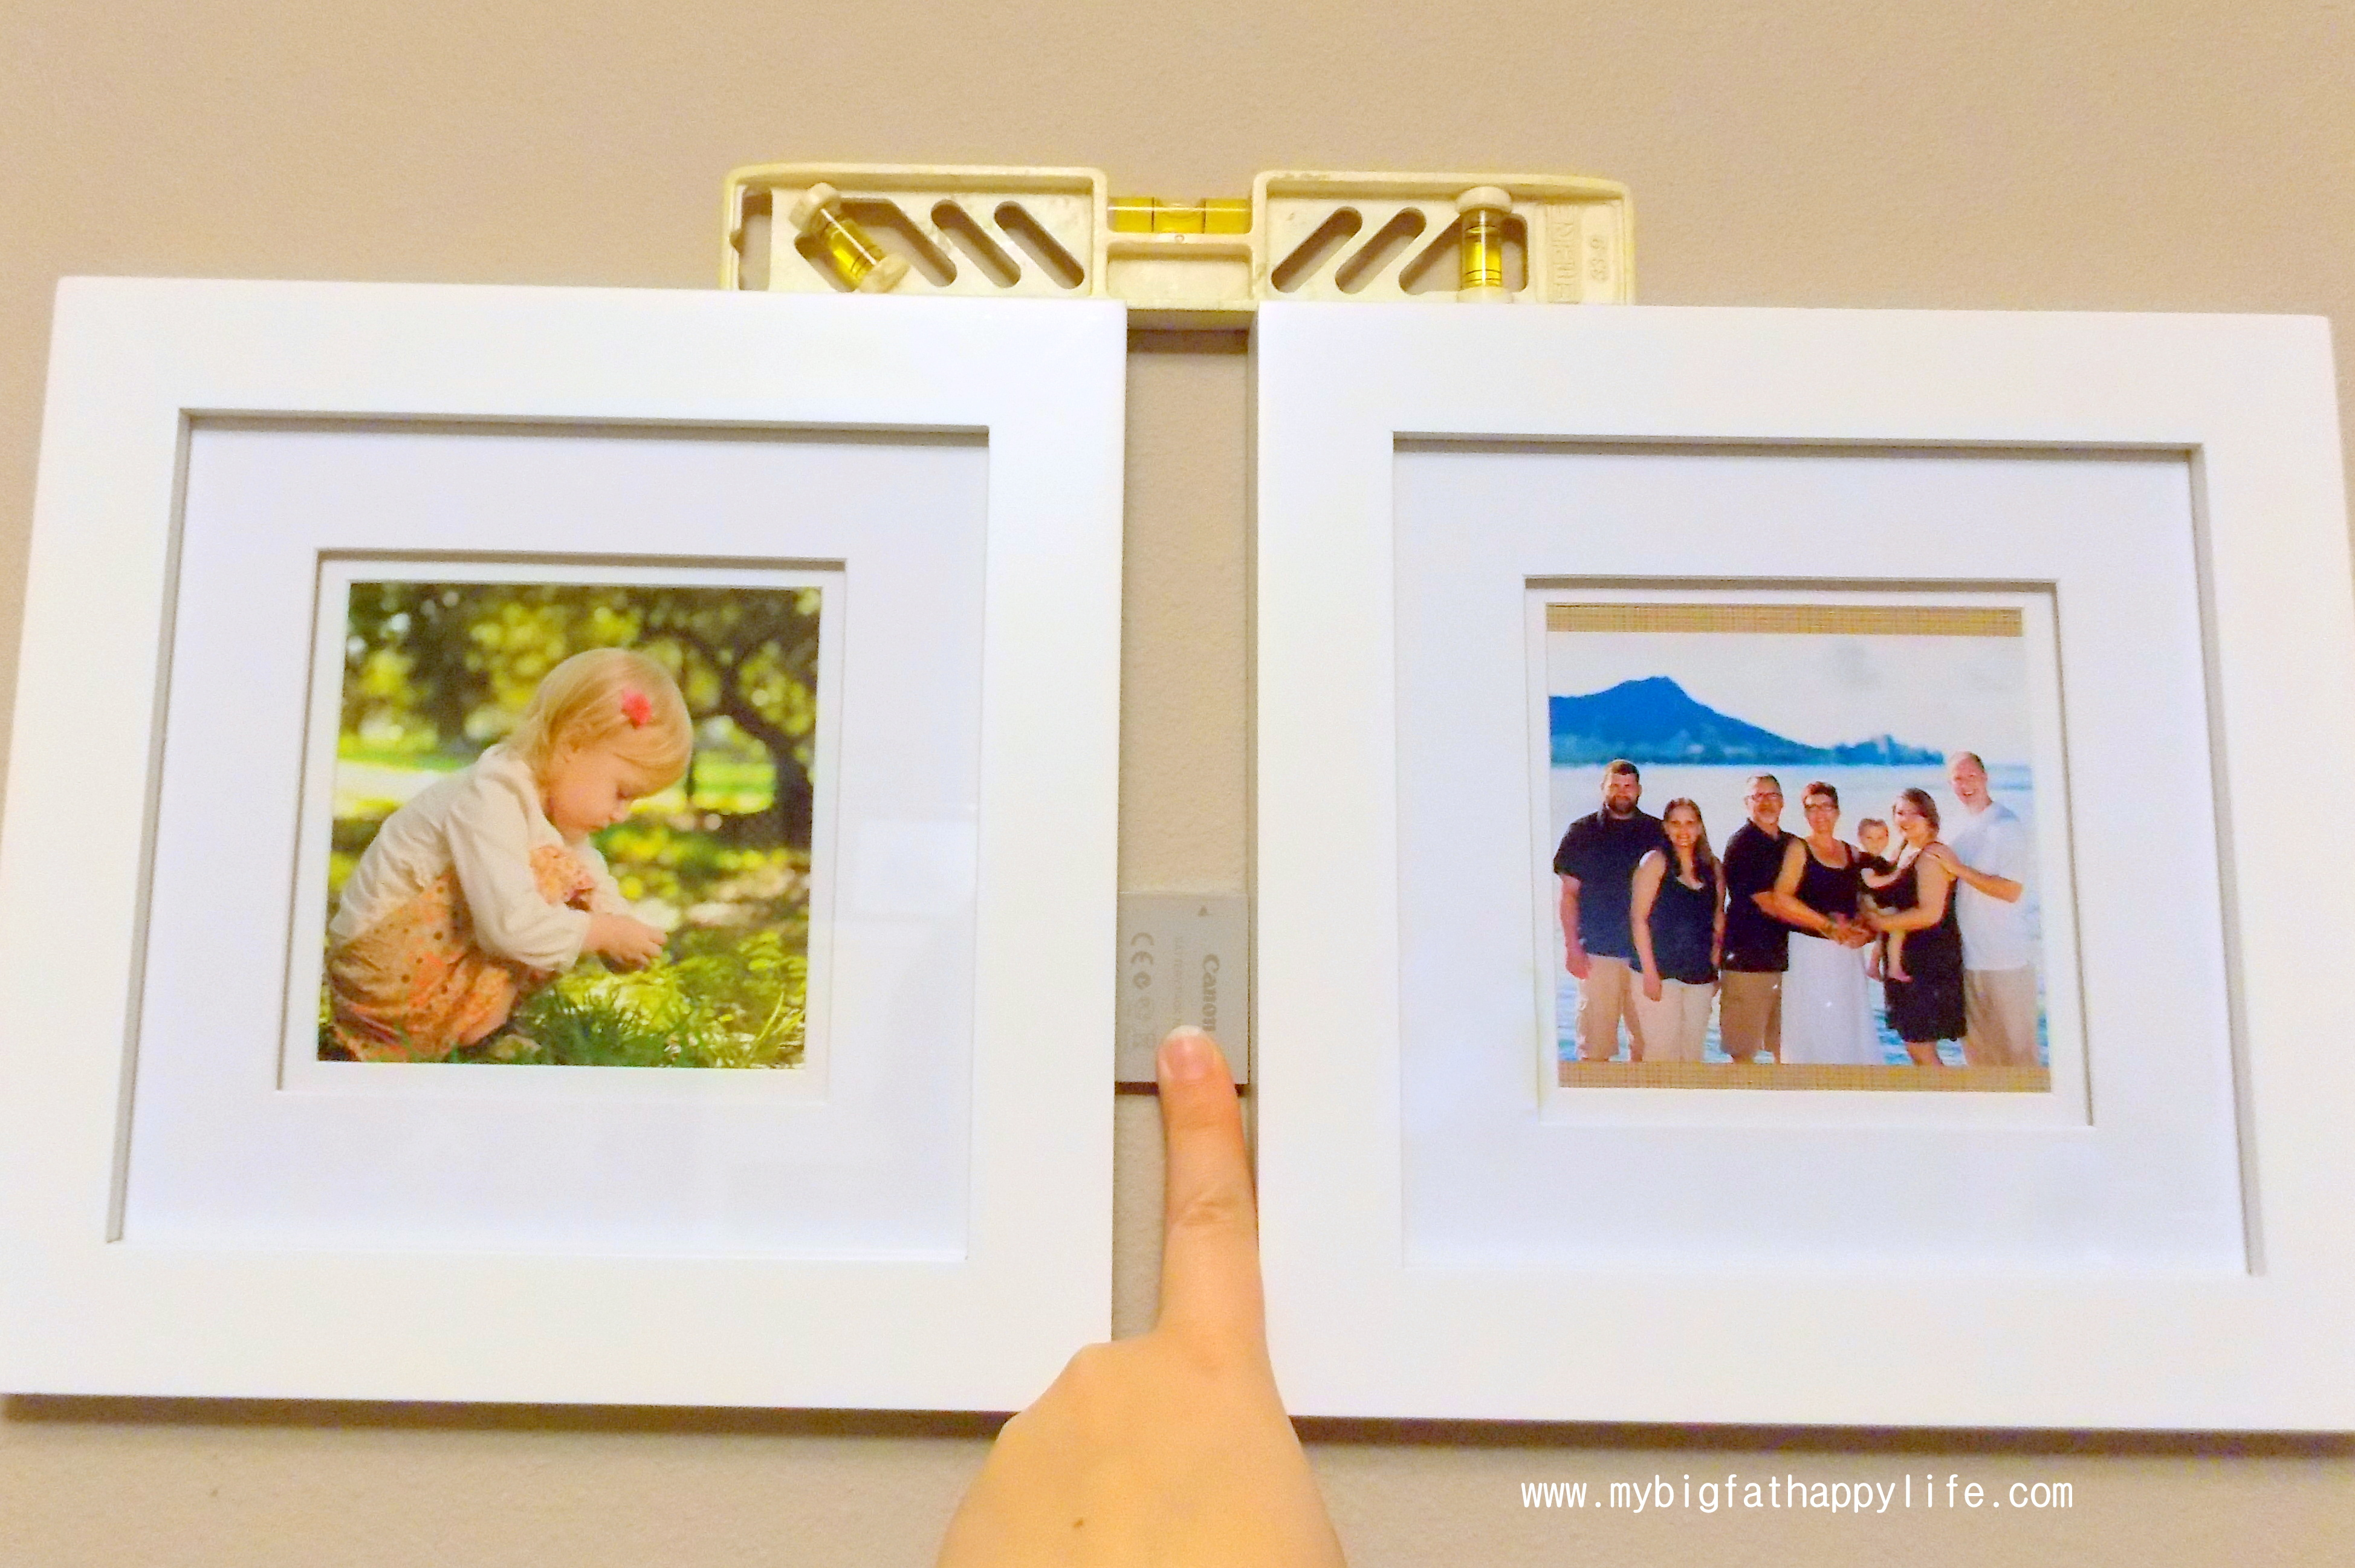 Arranging multiple picture frames on the wall my big fat happy life arranging multiple picture frames on the wall mybigfathappylife jeuxipadfo Gallery